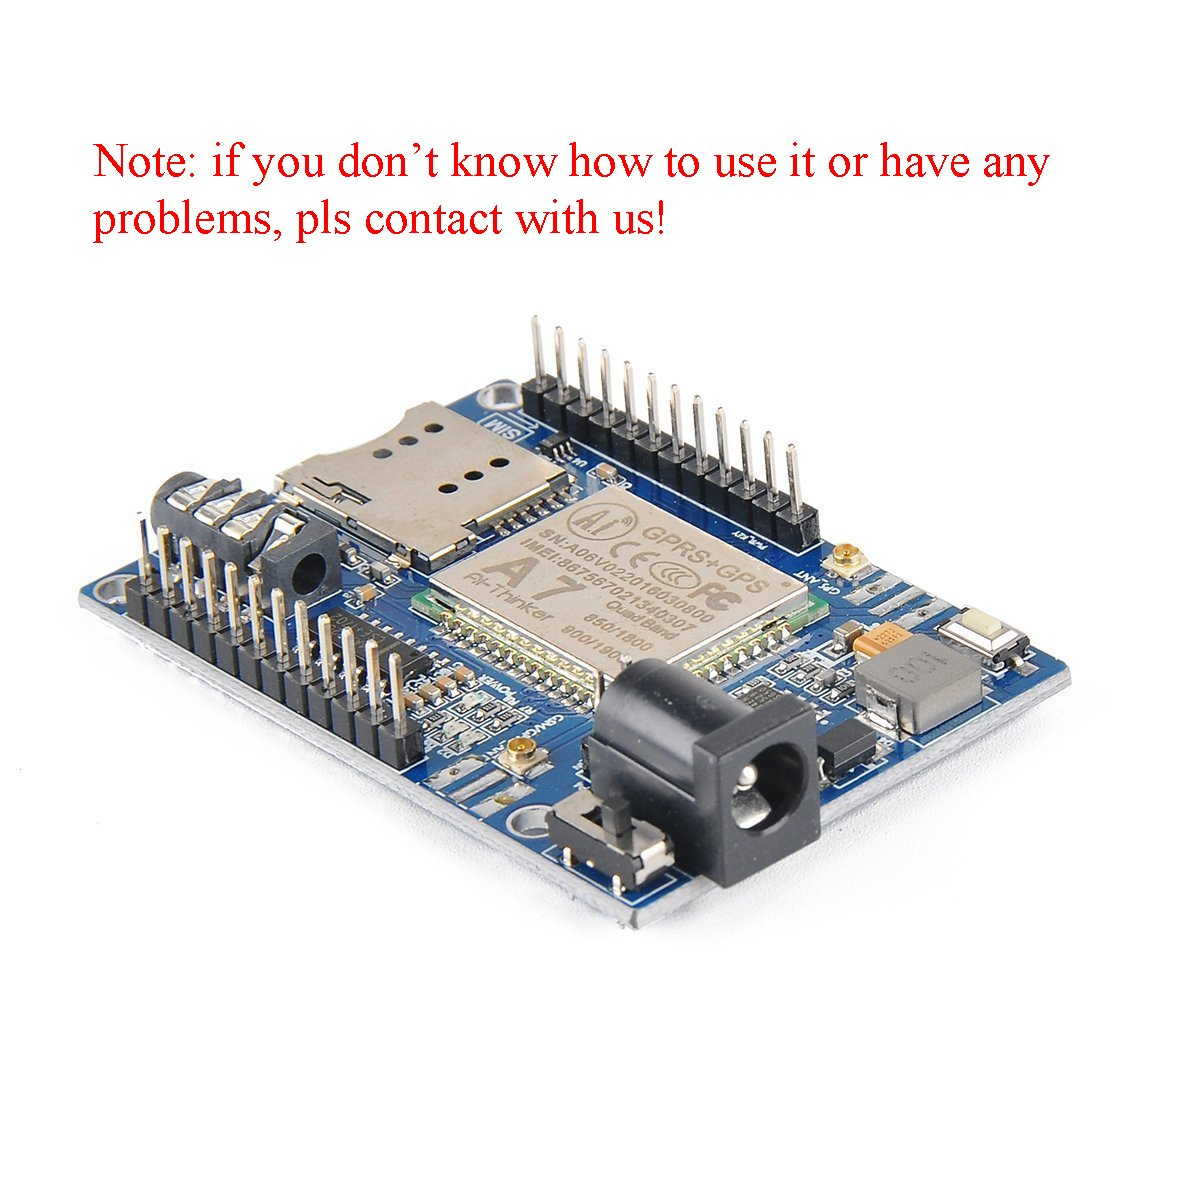 MakerHawk A7 GSM GPRS GPS Module 3 in 1 Module Quad Band GSM/GPRS IPEX  Antenna DC 5-9V Support Voice Short Message for Arduino STM32 51